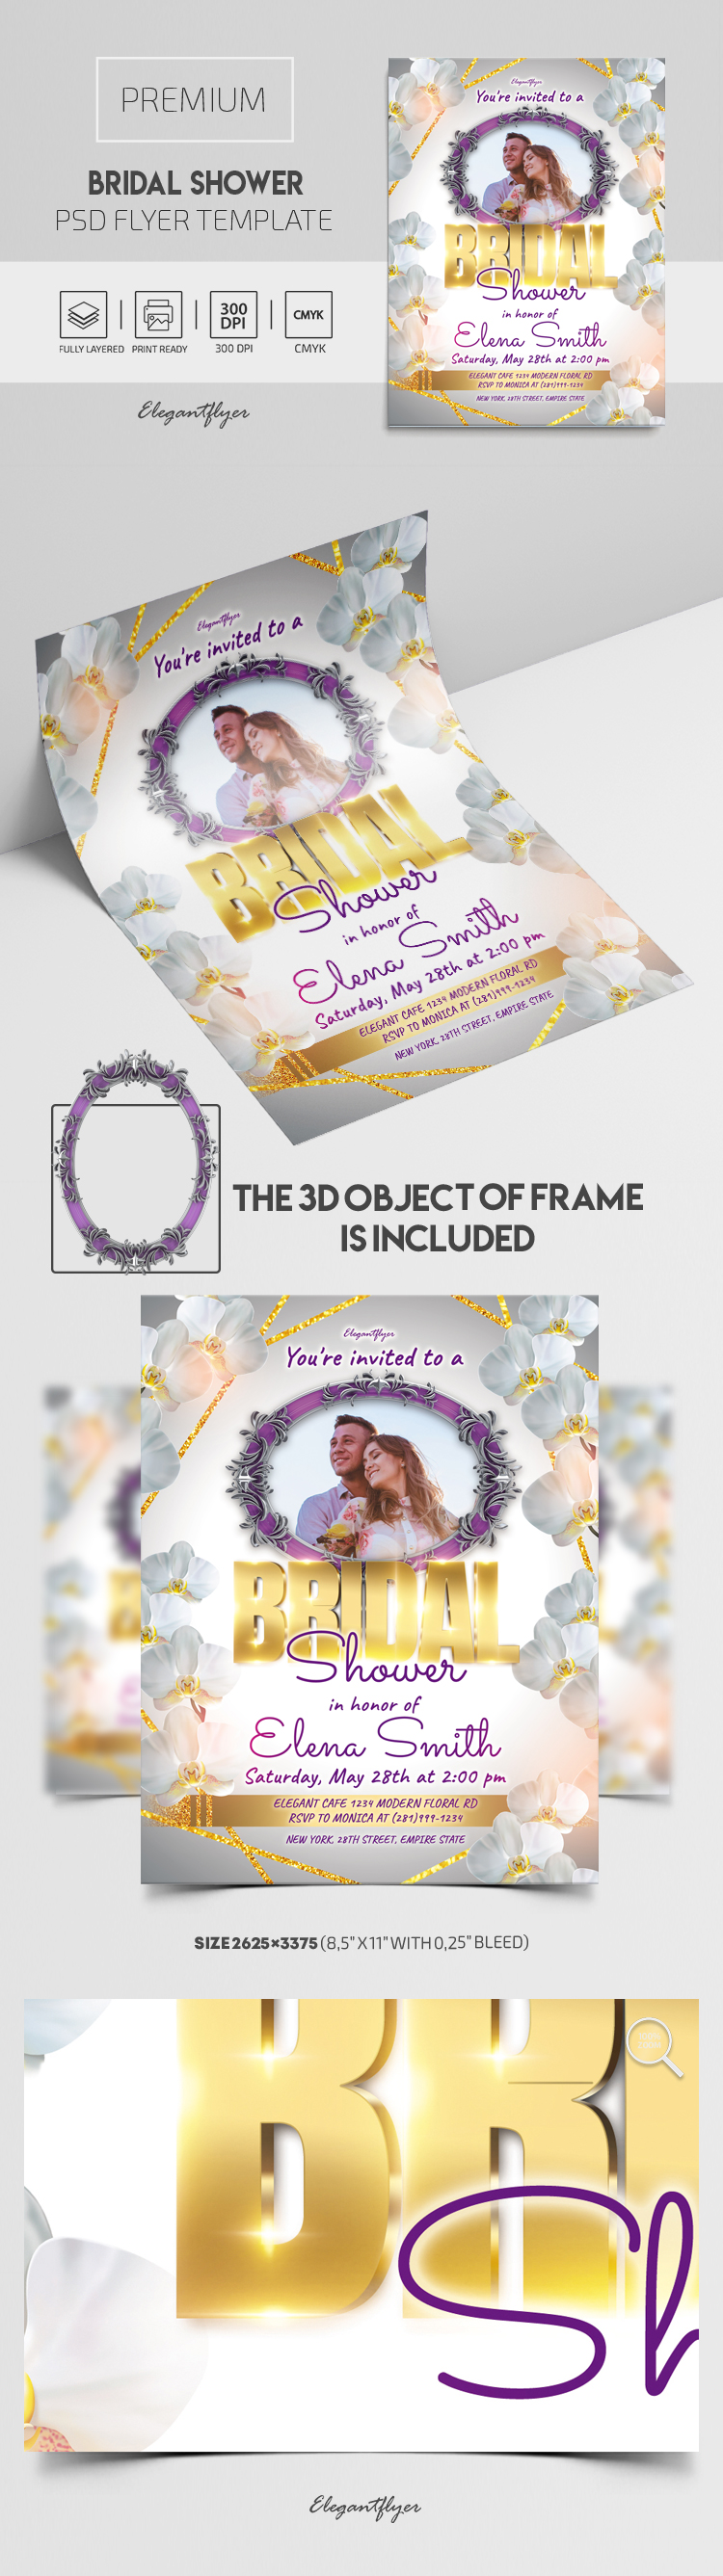 Bridal Shower – Premium PSD Flyer Template